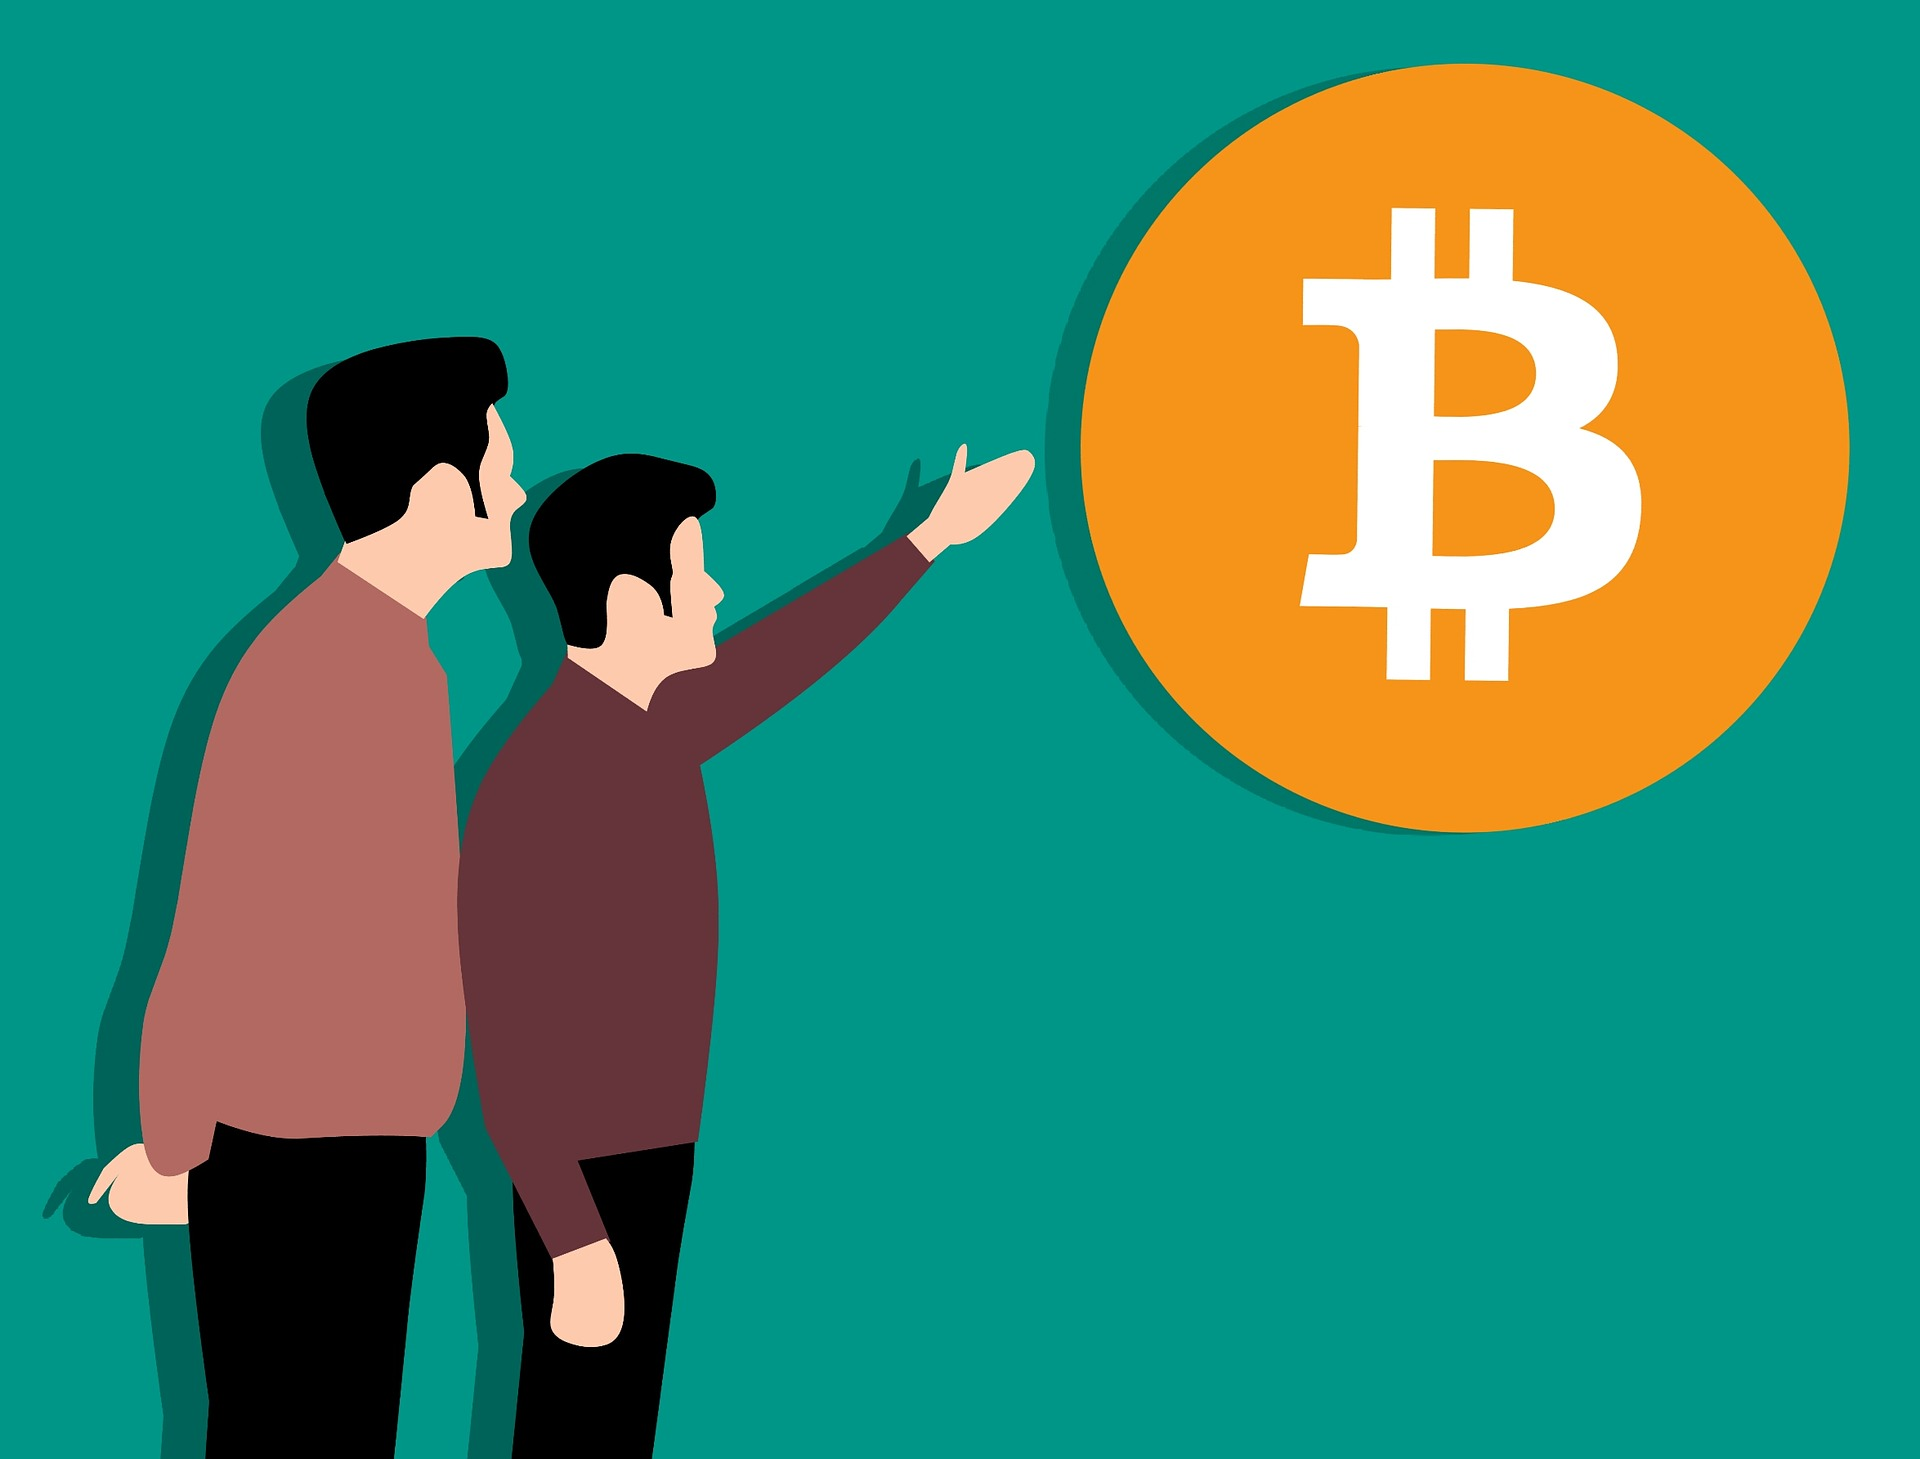 cryptocurrency-3305671_1920.jpg